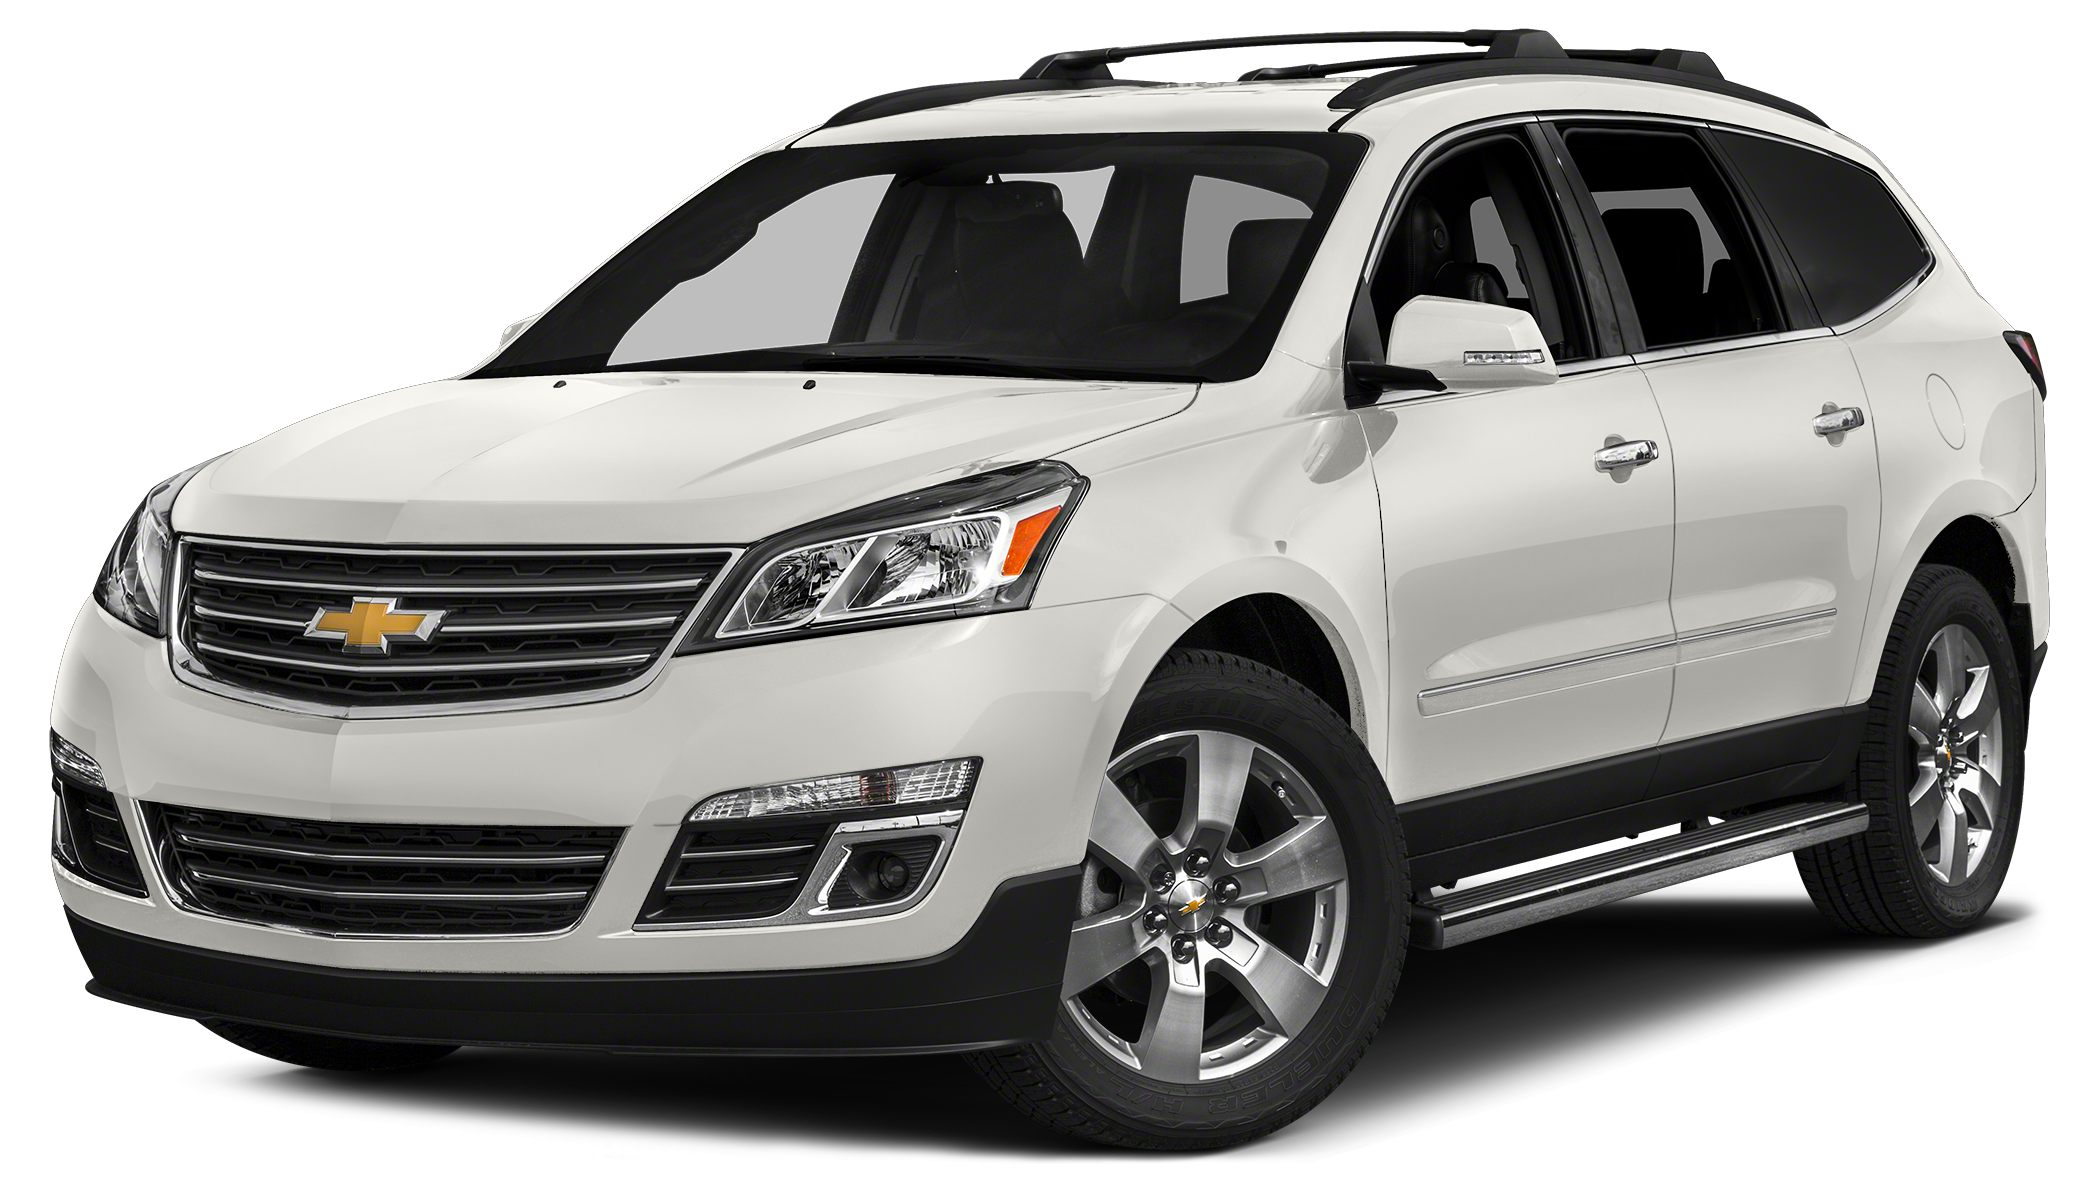 2015 Chevrolet Traverse LTZ Miles 24219Color White Stock T7026A VIN 1GNKRJKD9FJ190895